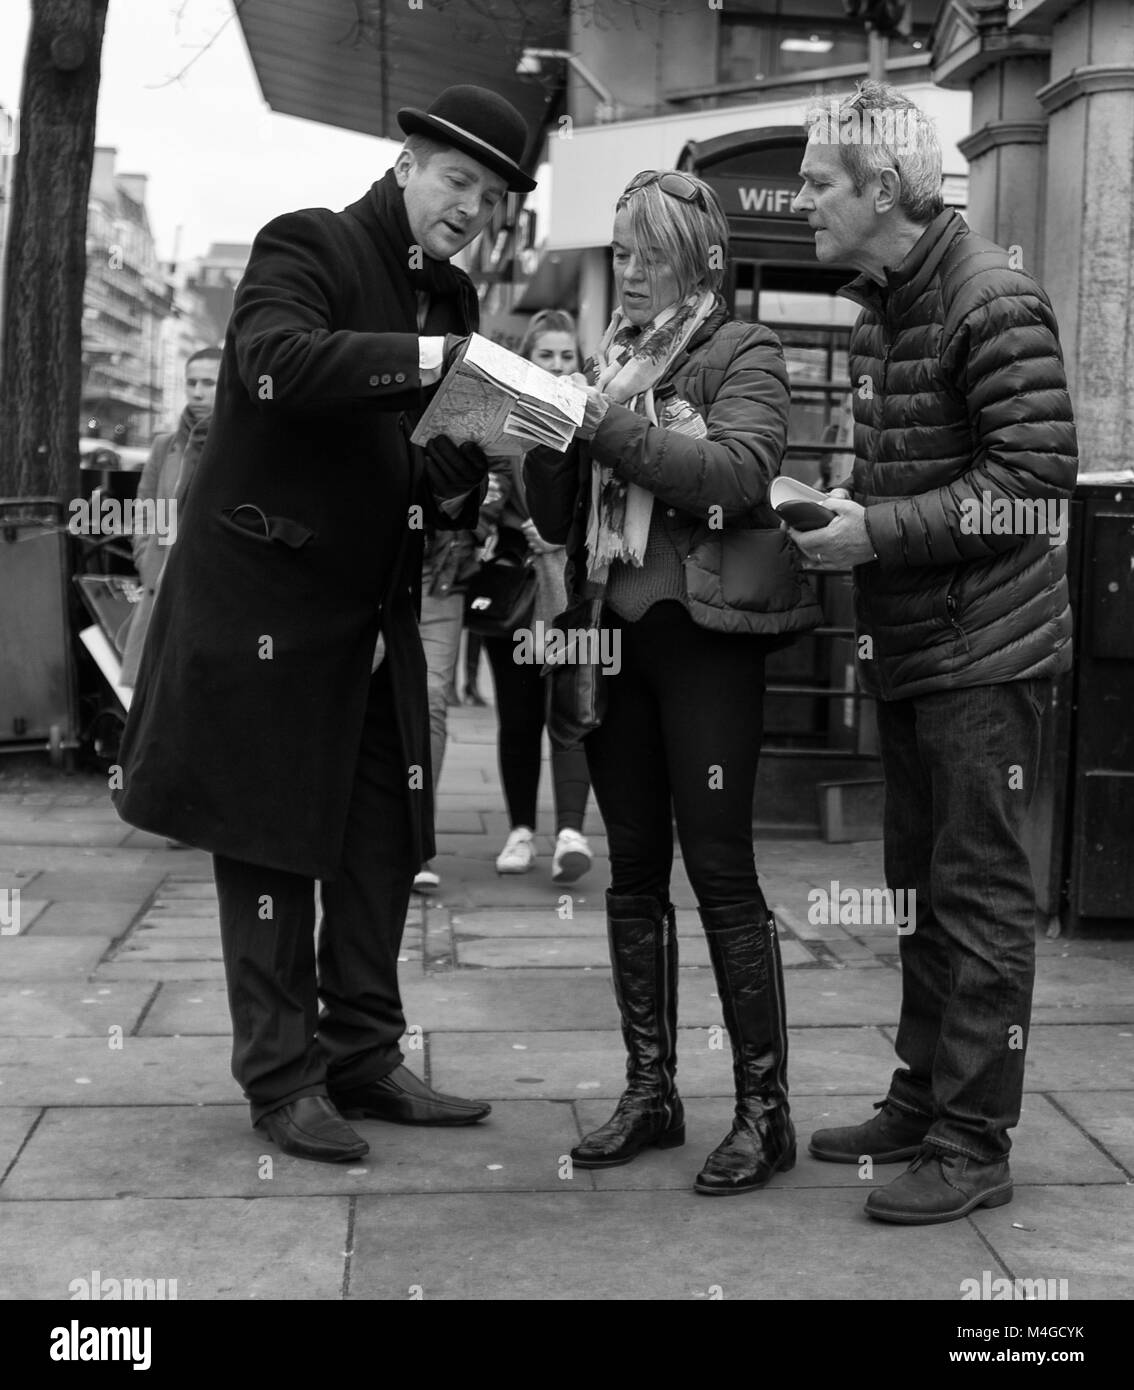 Black & White Photograph of a man giving directions, London, England, UK. Credit: London Snapper - Stock Image